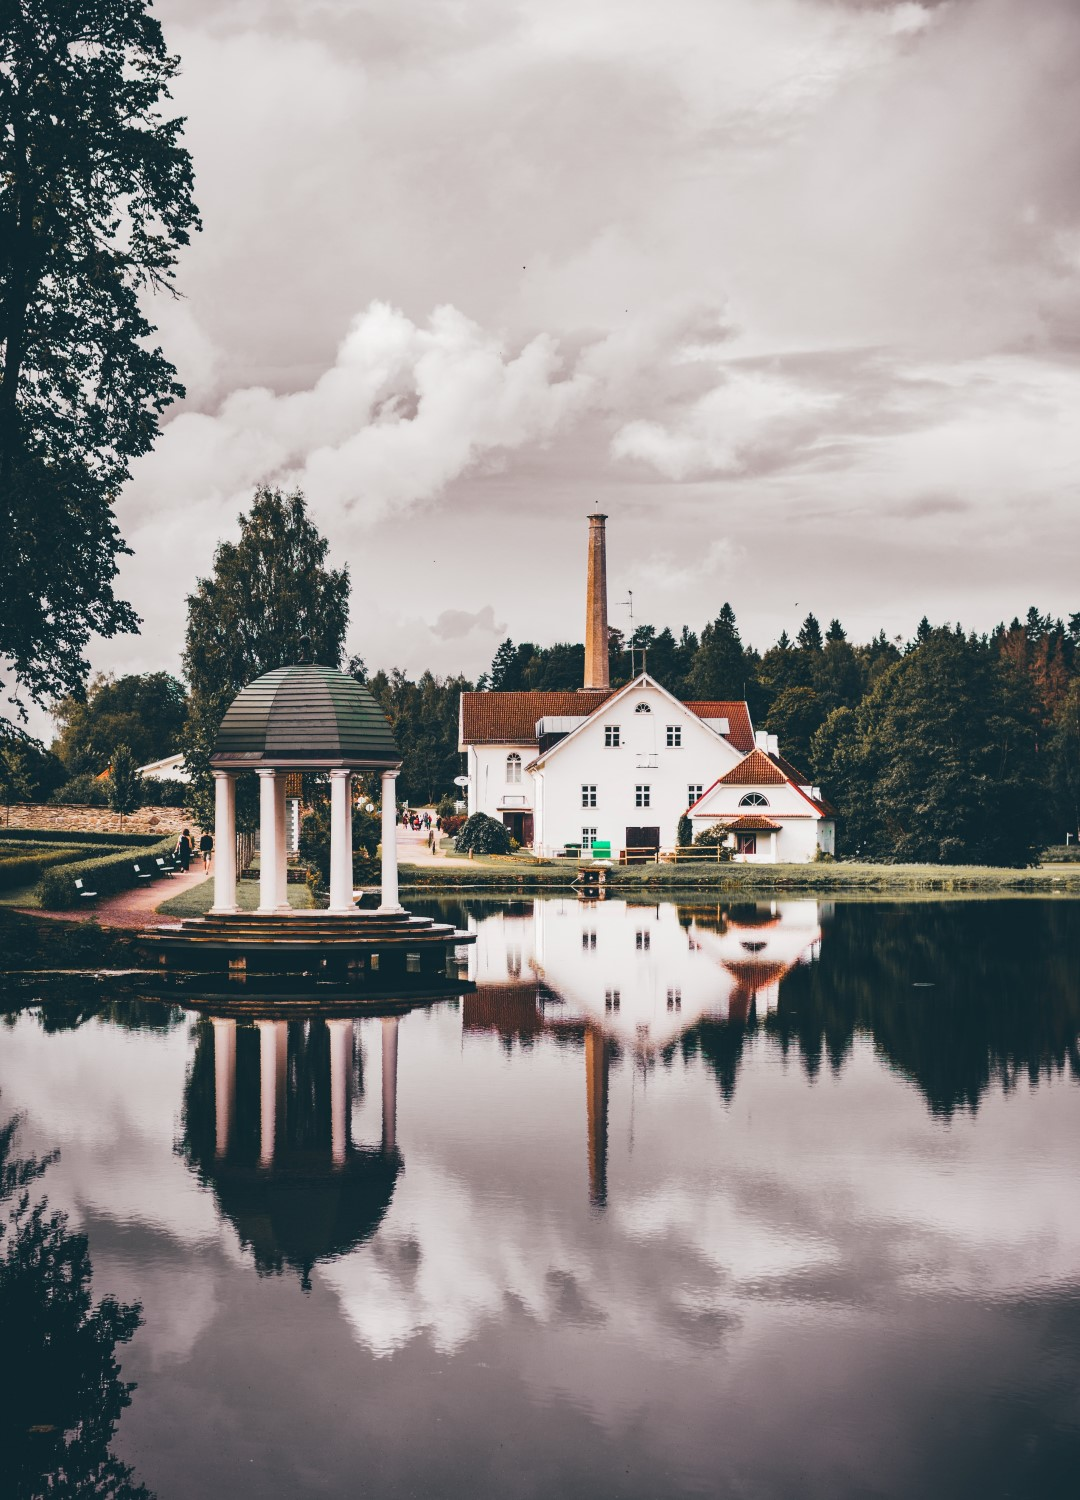 white house with a chimney on a lake on a cloudy day